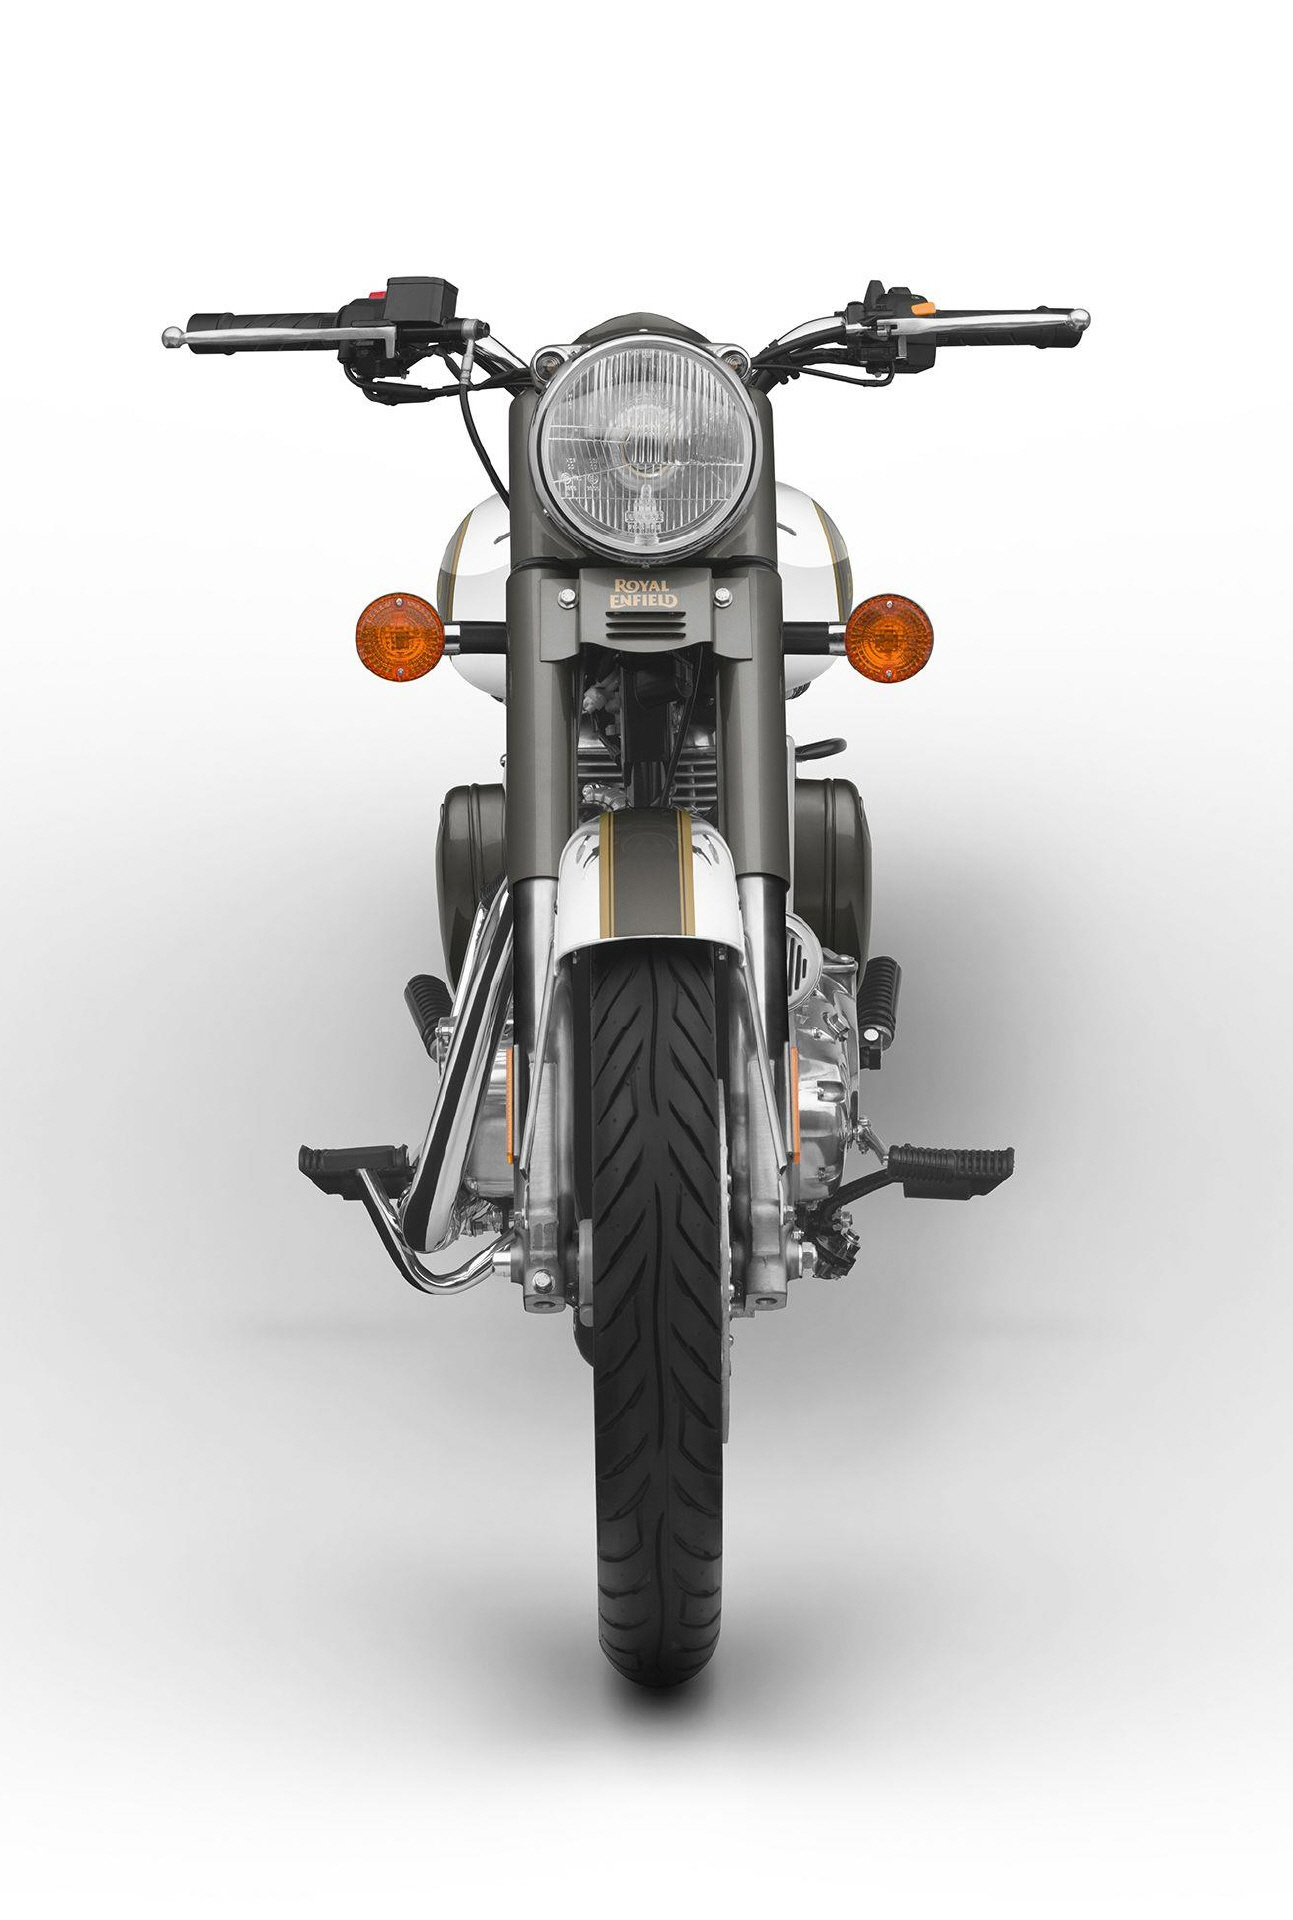 royalenfield_classic_chrome_graphite_03jpg